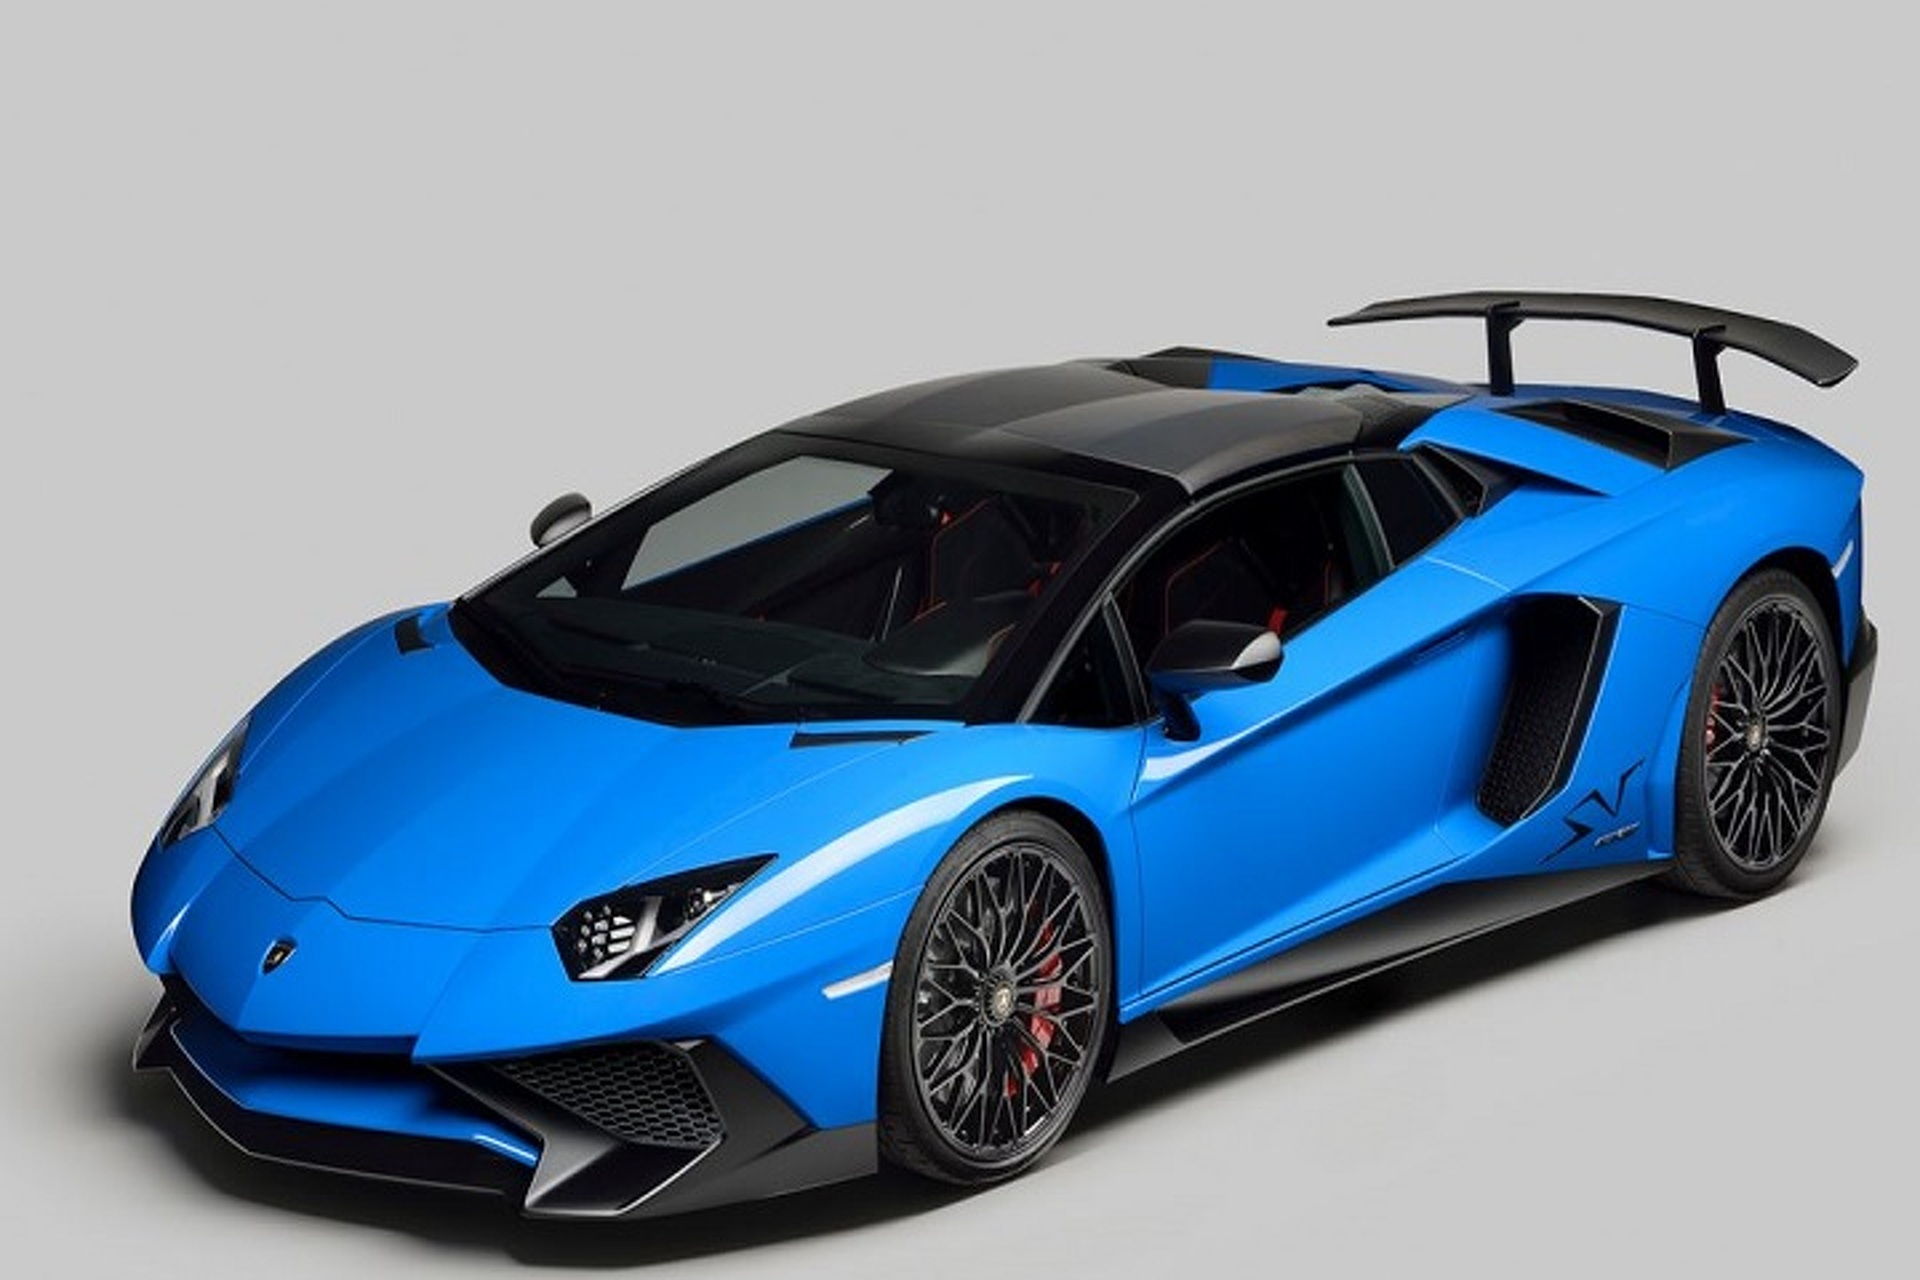 Chris Brown is Now the Proud Owner of a Lamborghini Aventador SV